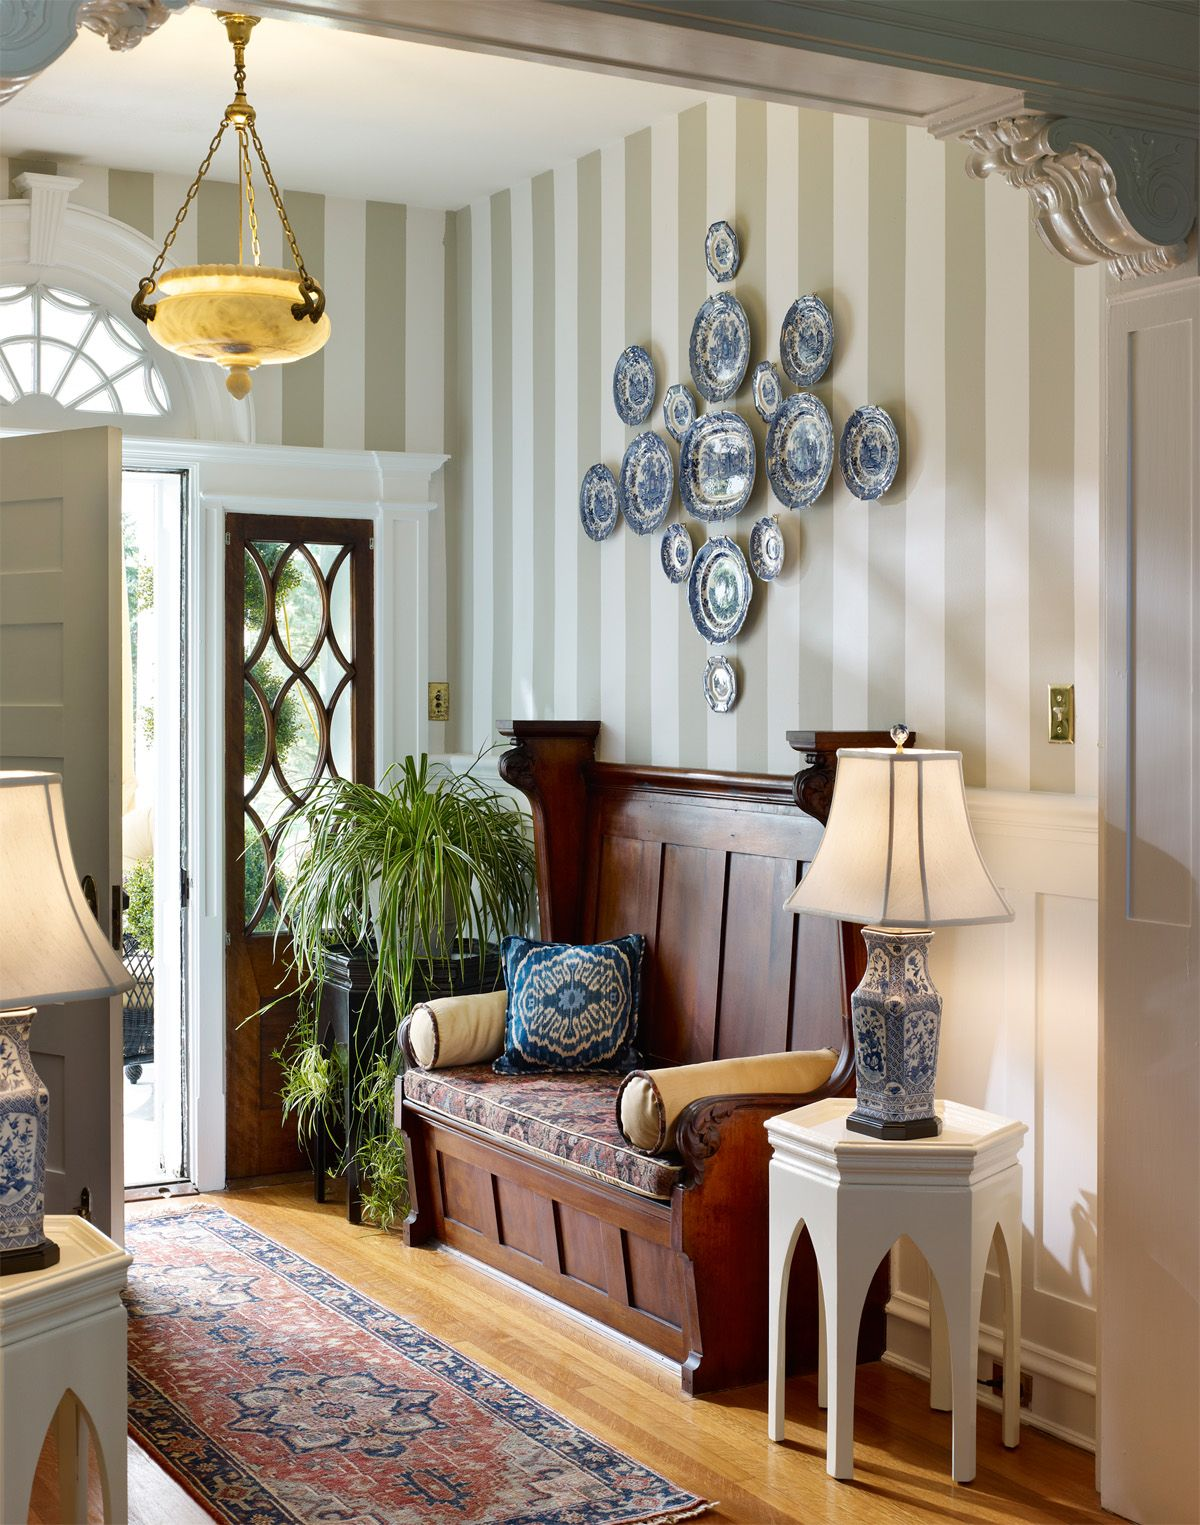 Small Foyer Decorating Ideas Nothing gives a room more drama and